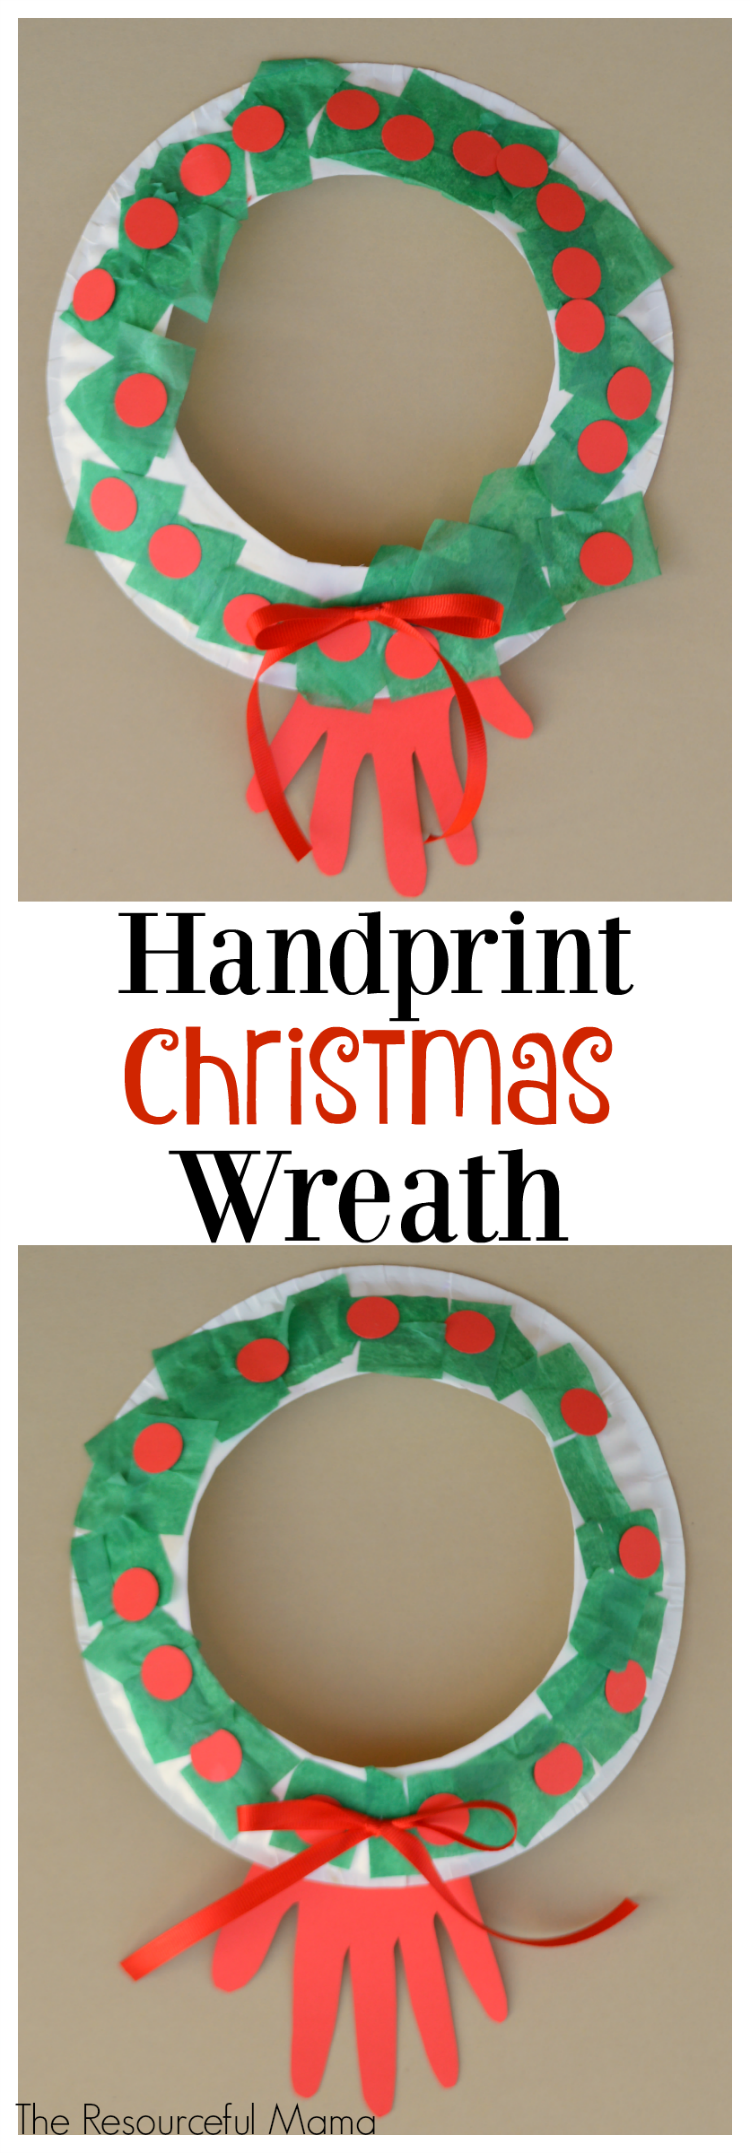 Handprint paper plate Christmas wreath kid craft  sc 1 st  The Resourceful Mama & Paper Plate Christmas Wreath Kid Craft - The Resourceful Mama